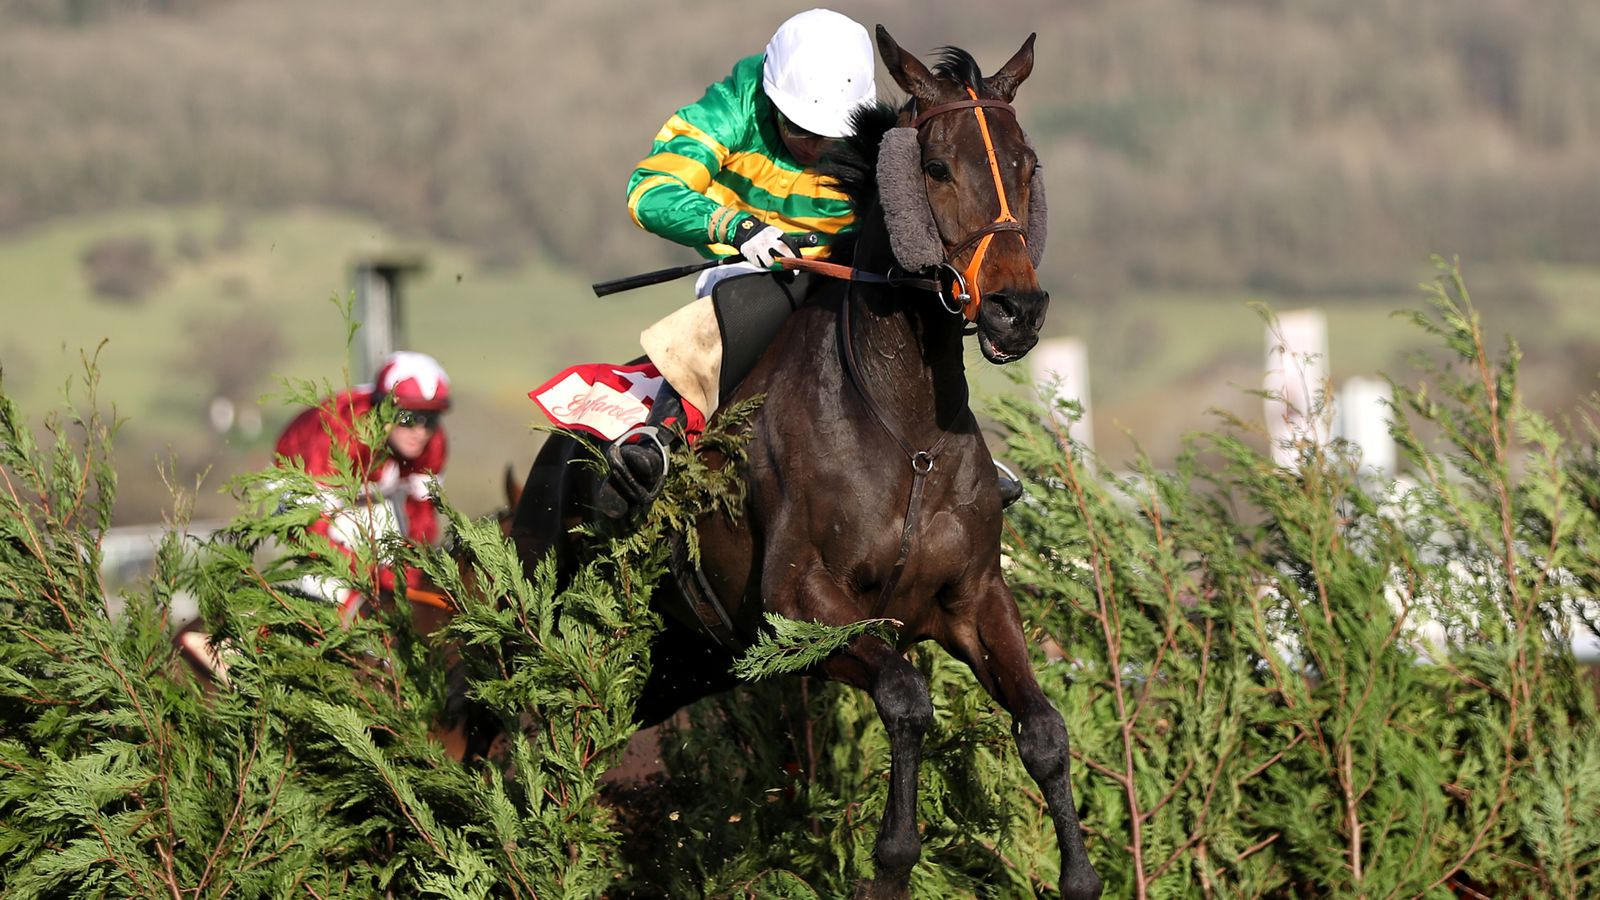 Holiday setback sidelines Easysland until the new year